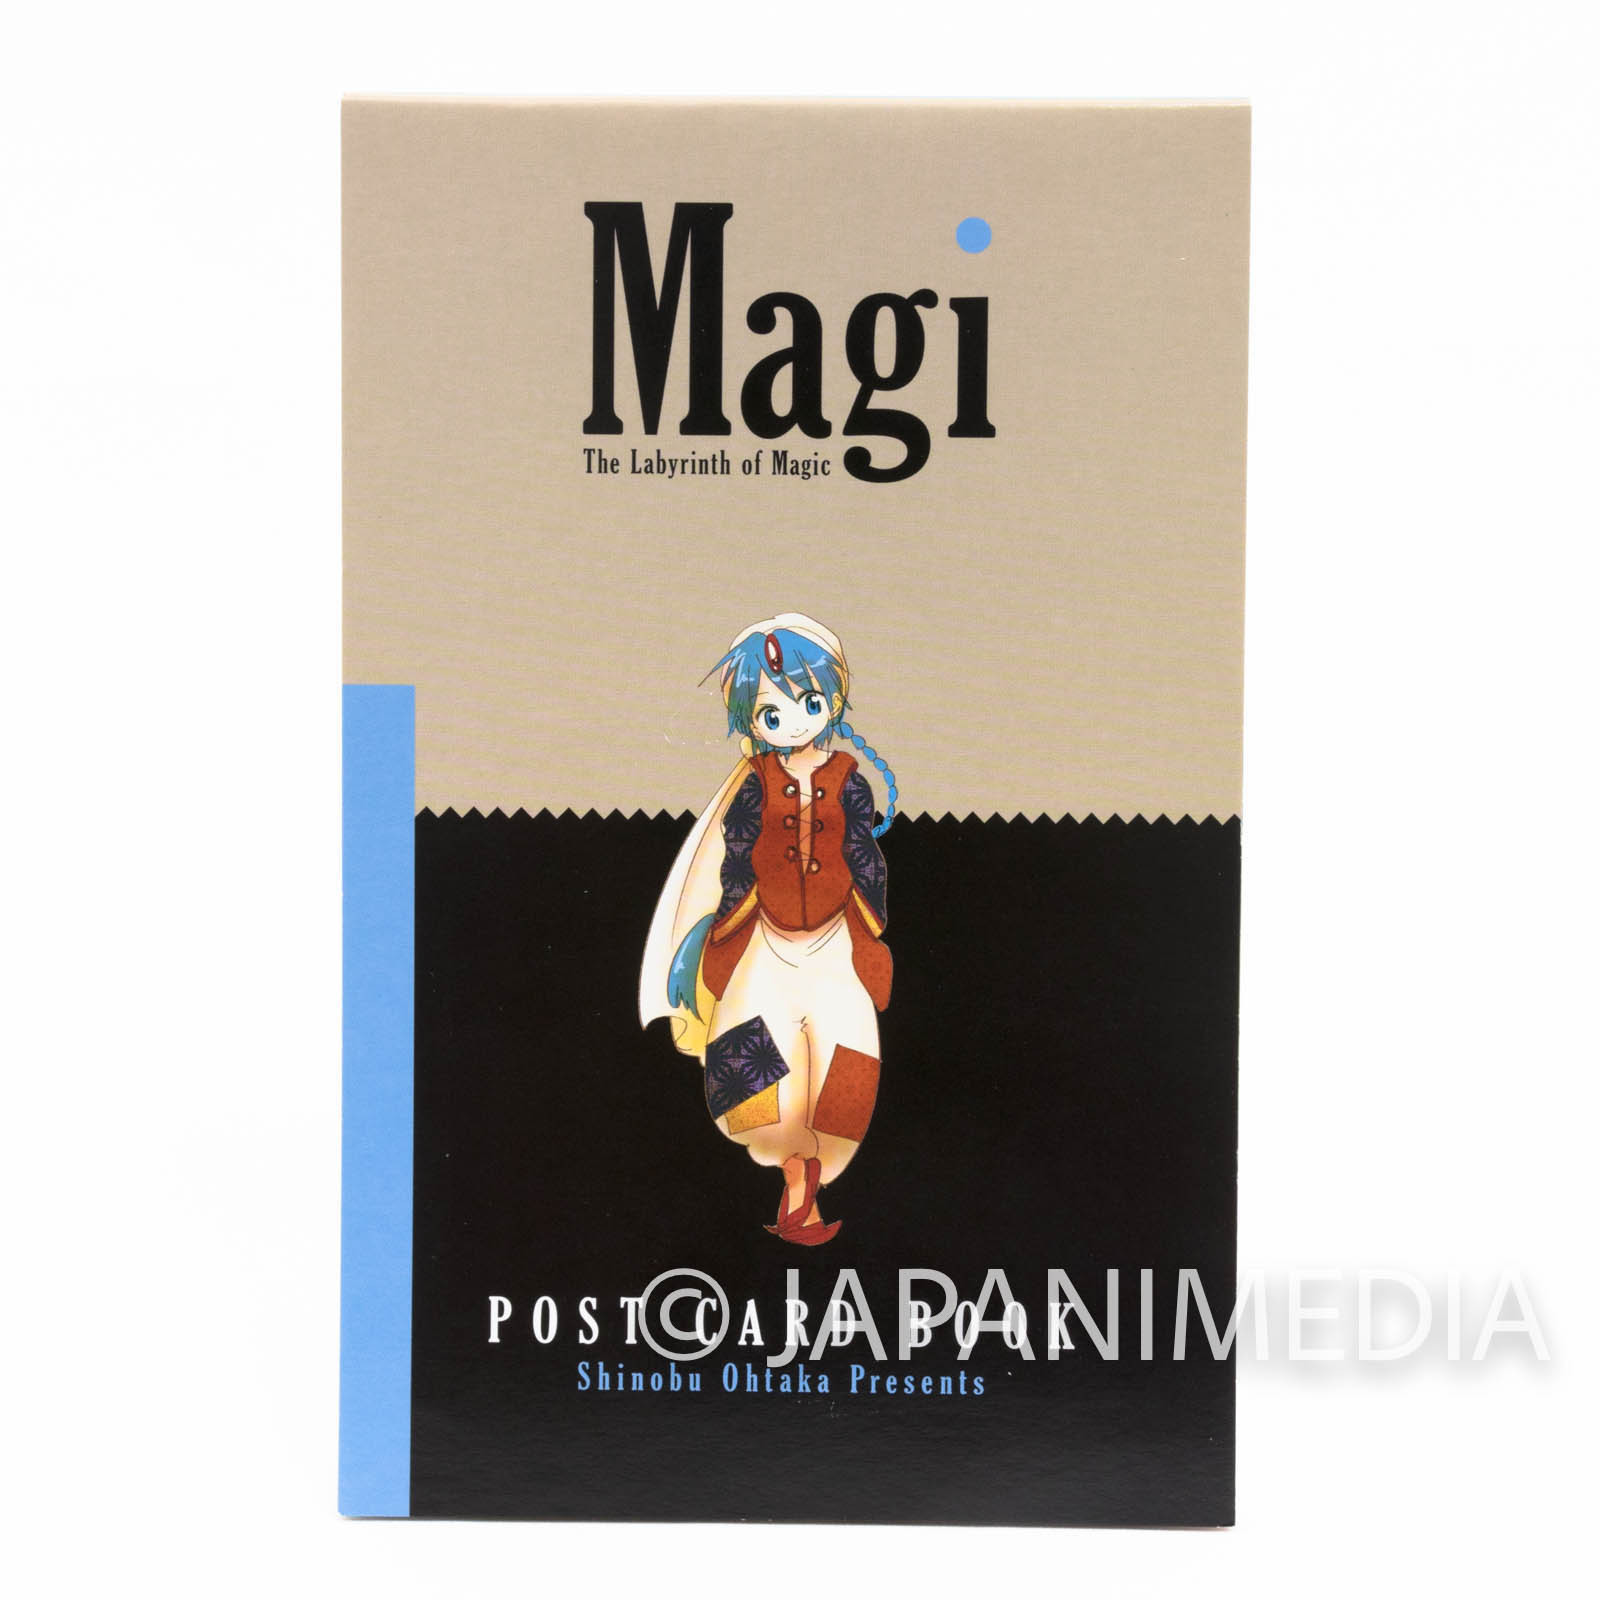 Magi The Labyrinth of Magic Postcards Book JAPAN ANIME